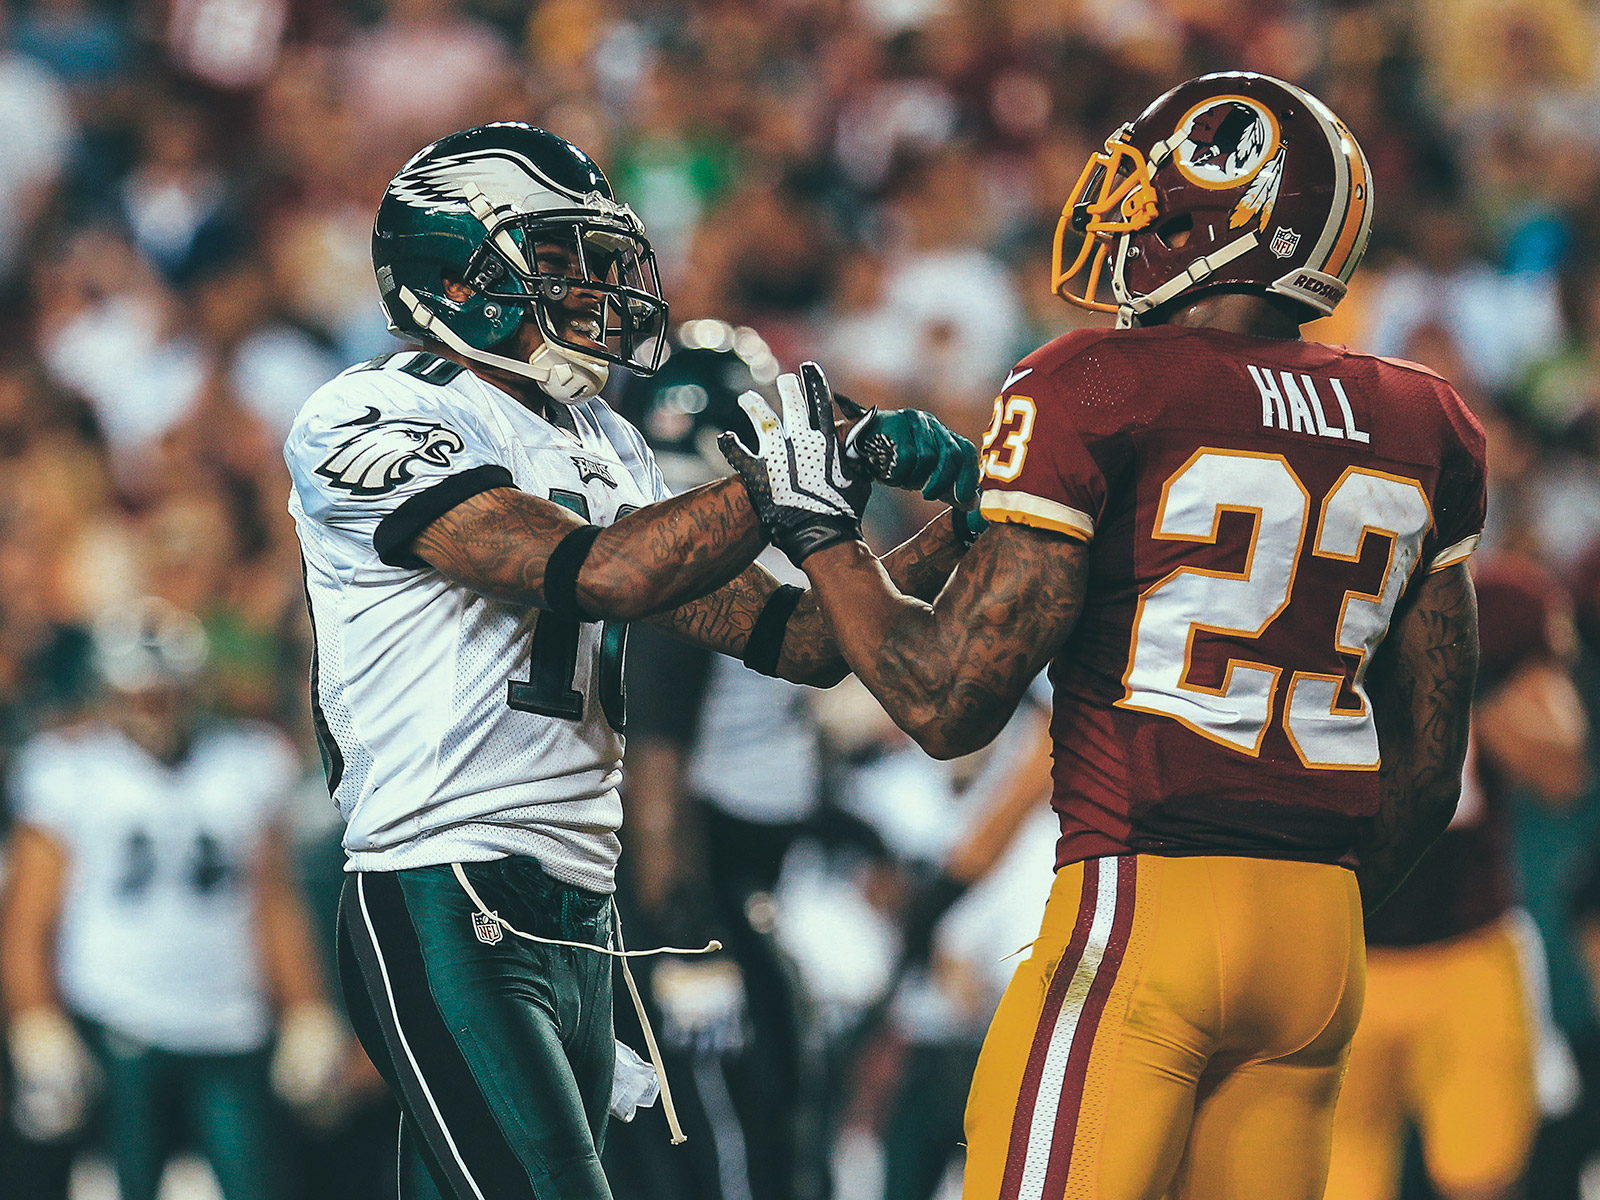 Desean Jackson Wallpaper Redskins Iphone | www.pixshark ...